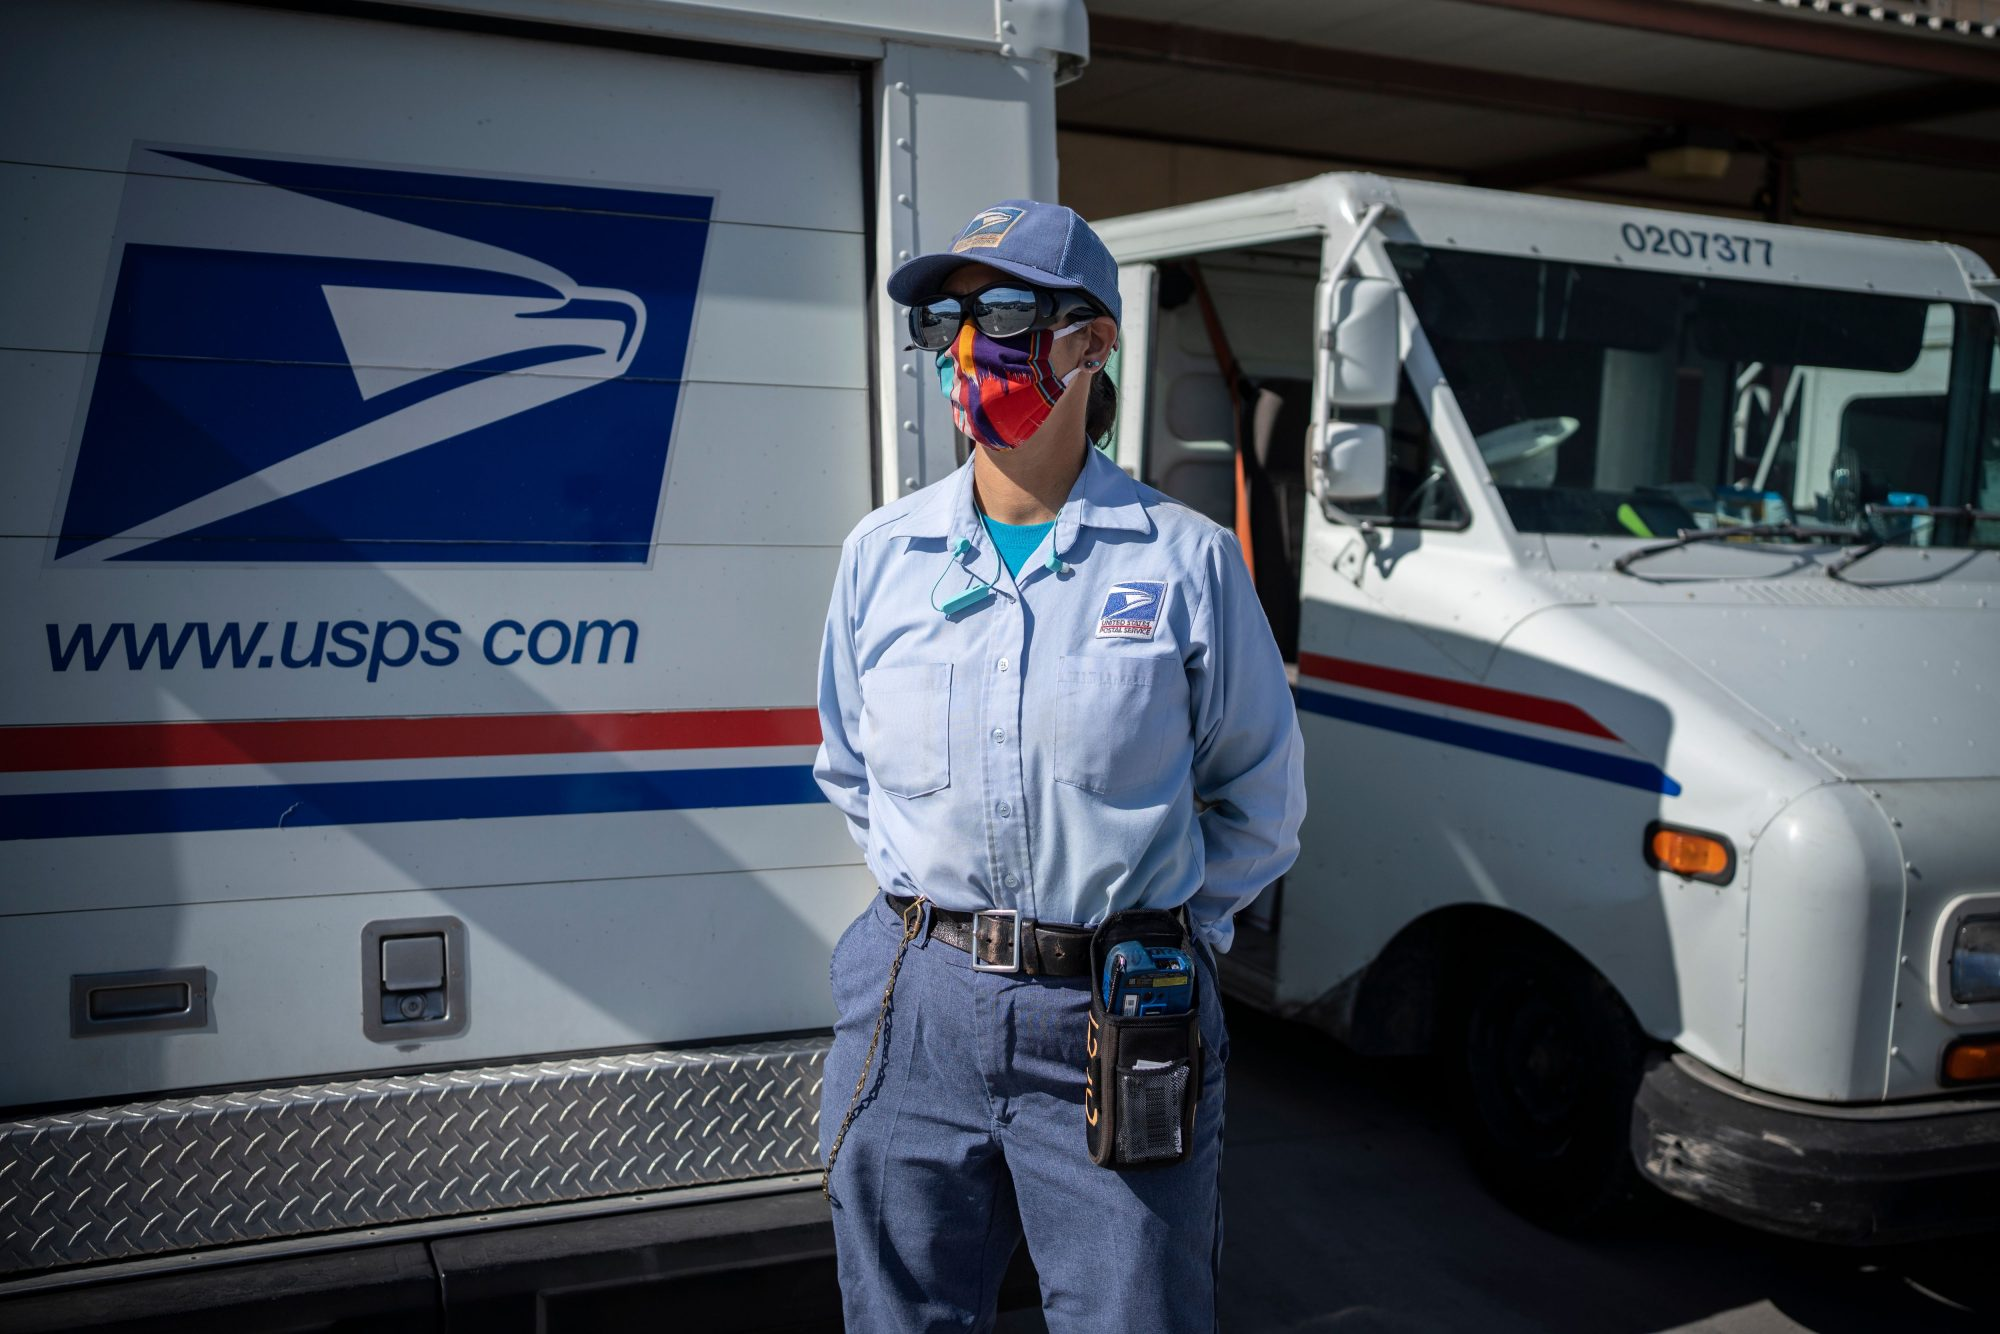 save the USPS, postal service, post office